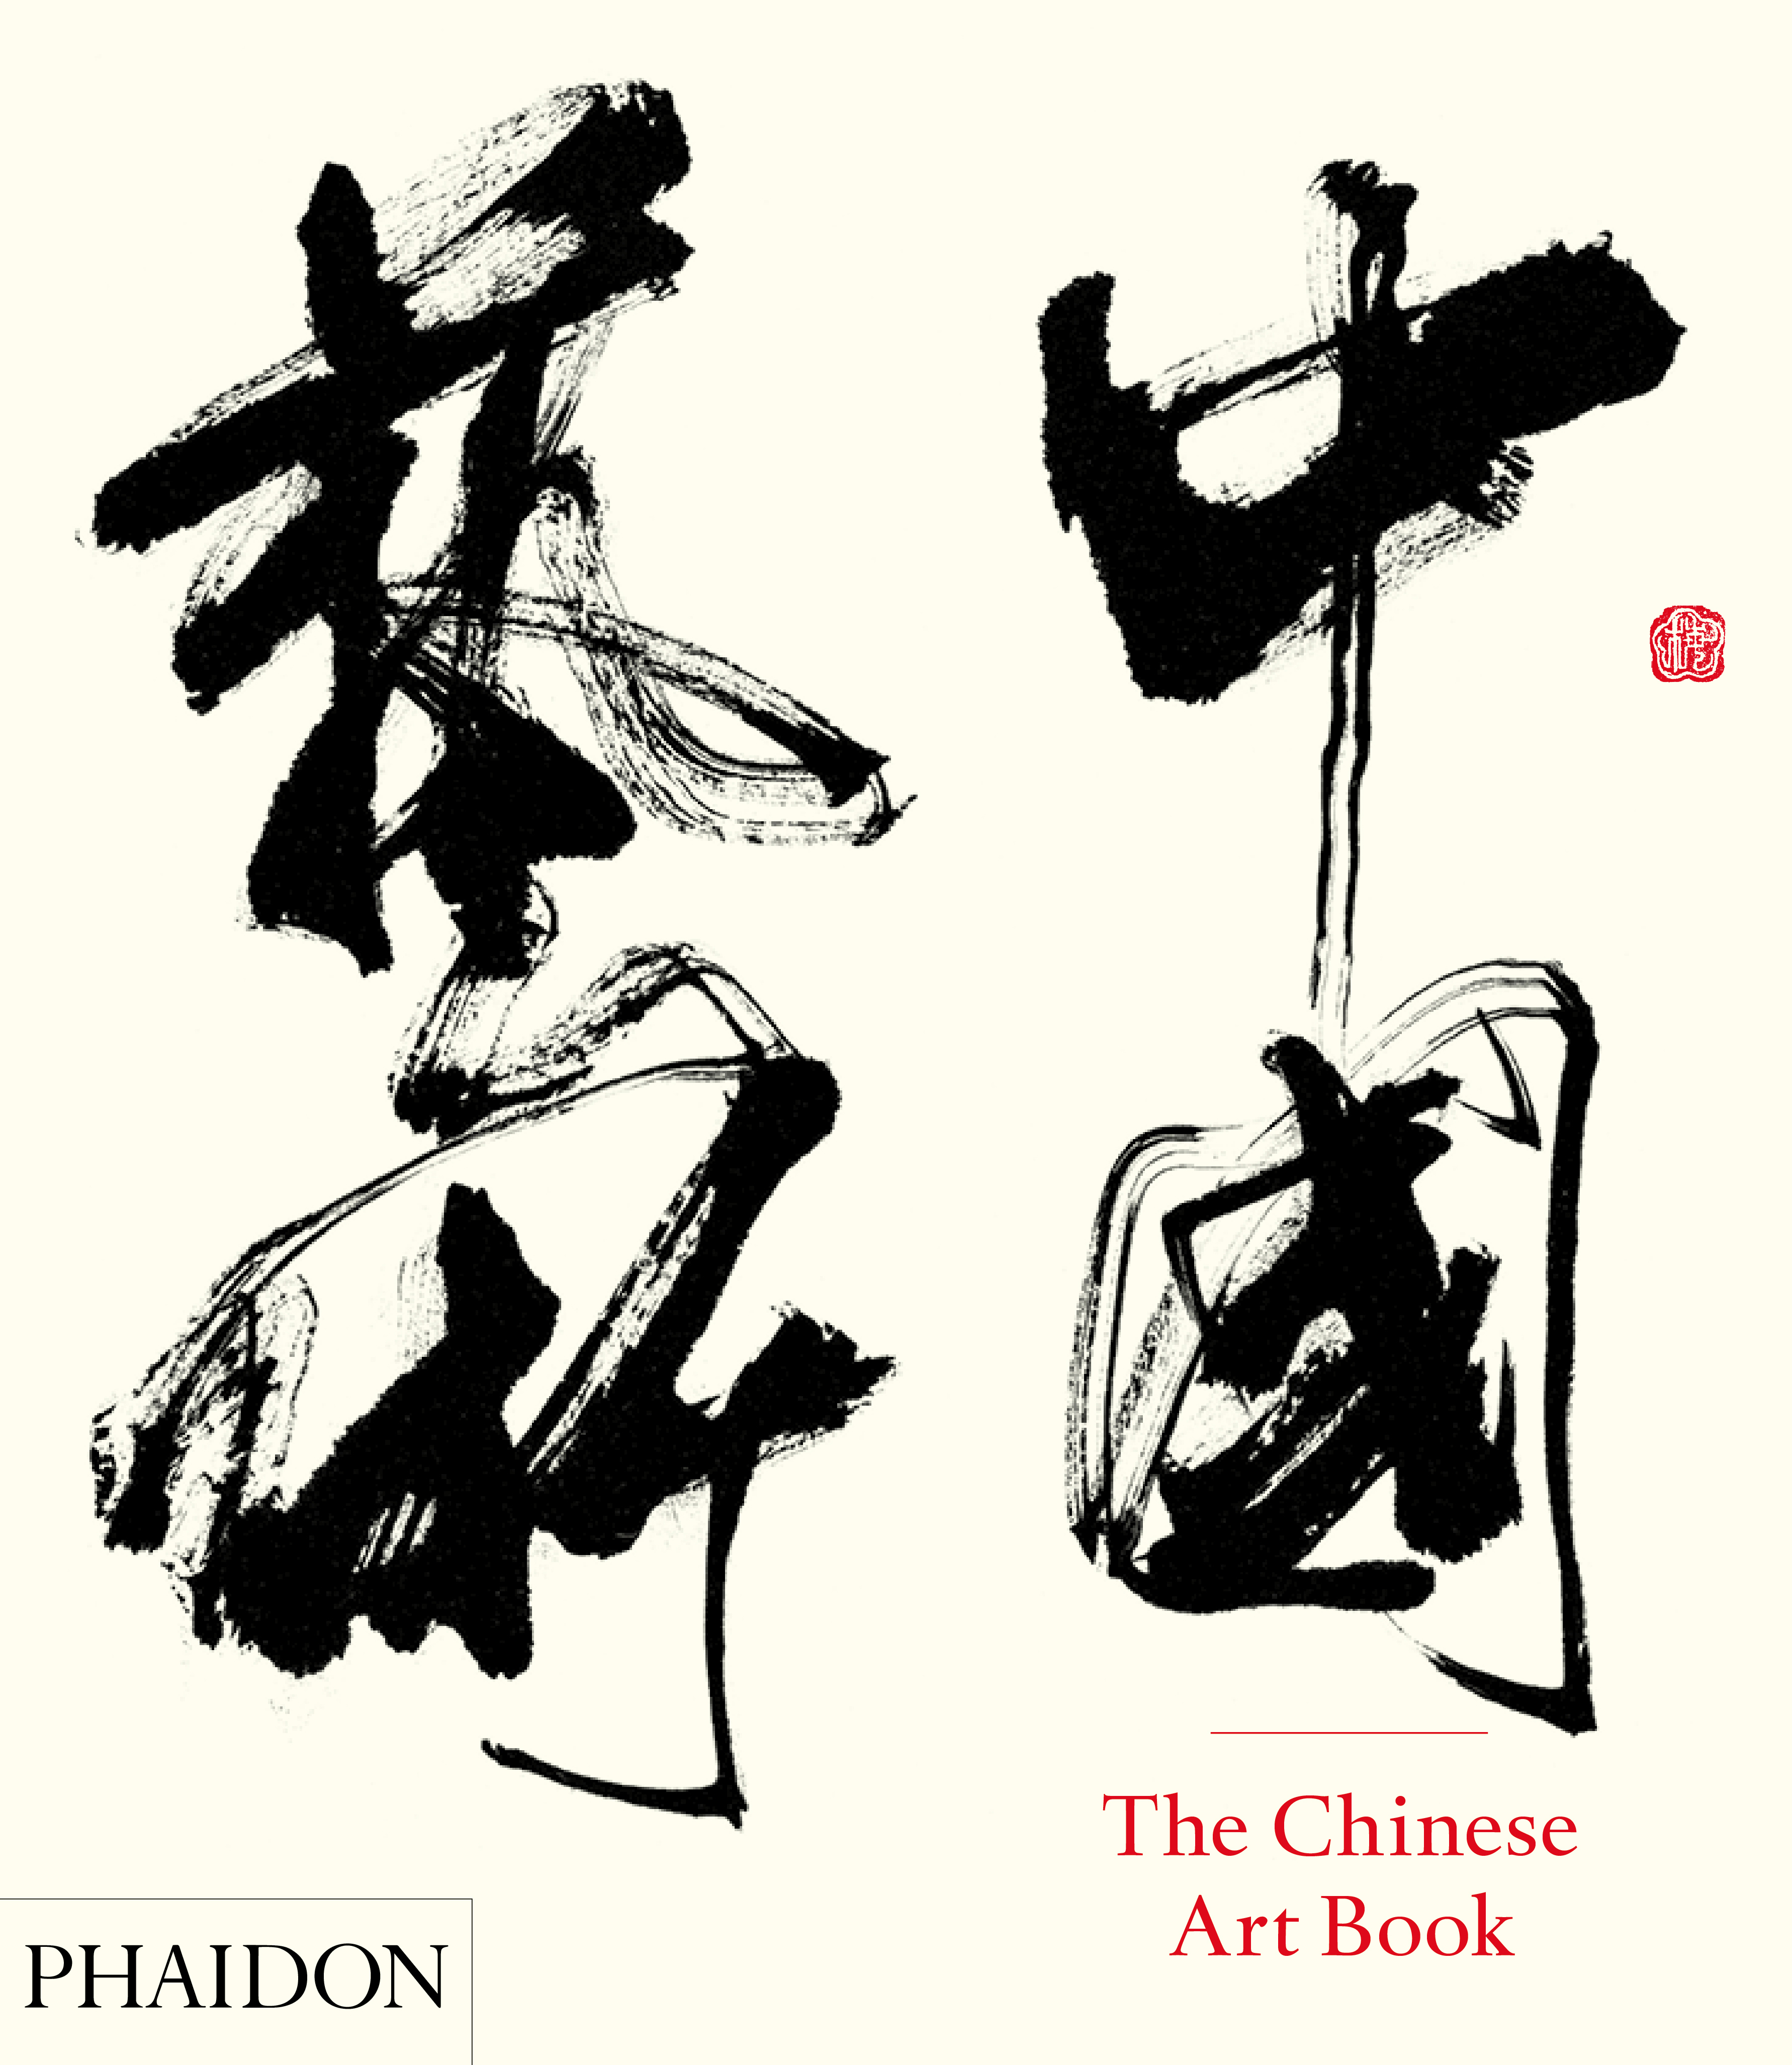 NEW BOOK: THE CHINESE ART BOOK, PHAIDON « Tim Forrest's E & A